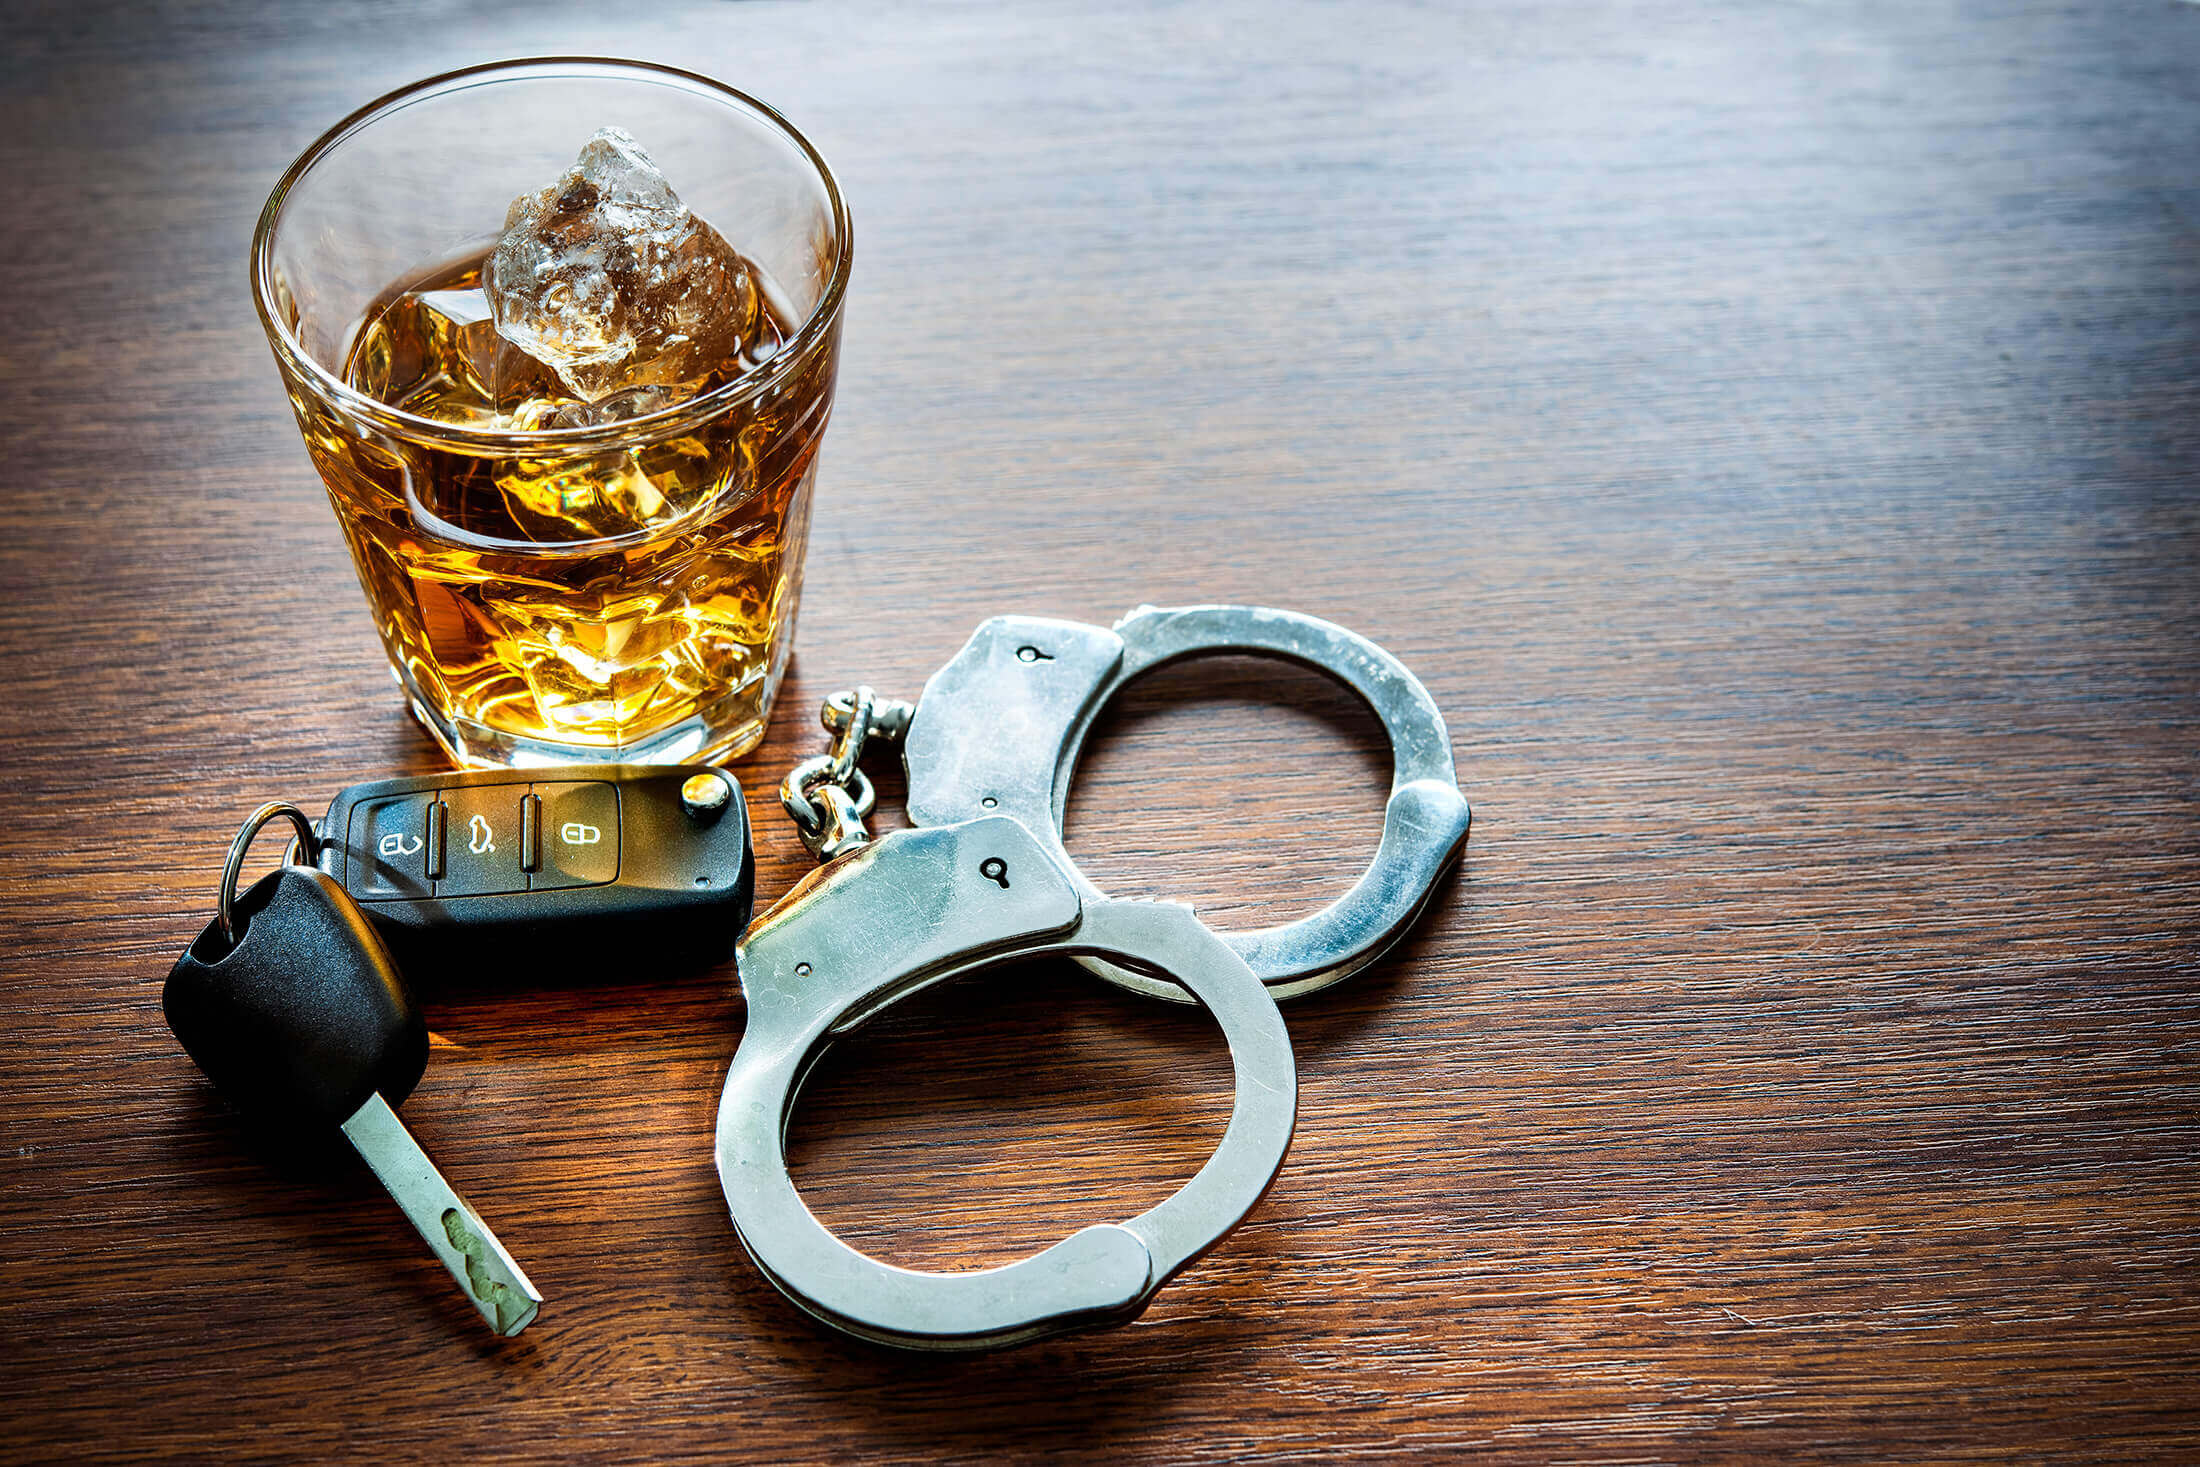 Blood or Breath Alcohol DUI Tests | Cook County DUI Lawyer